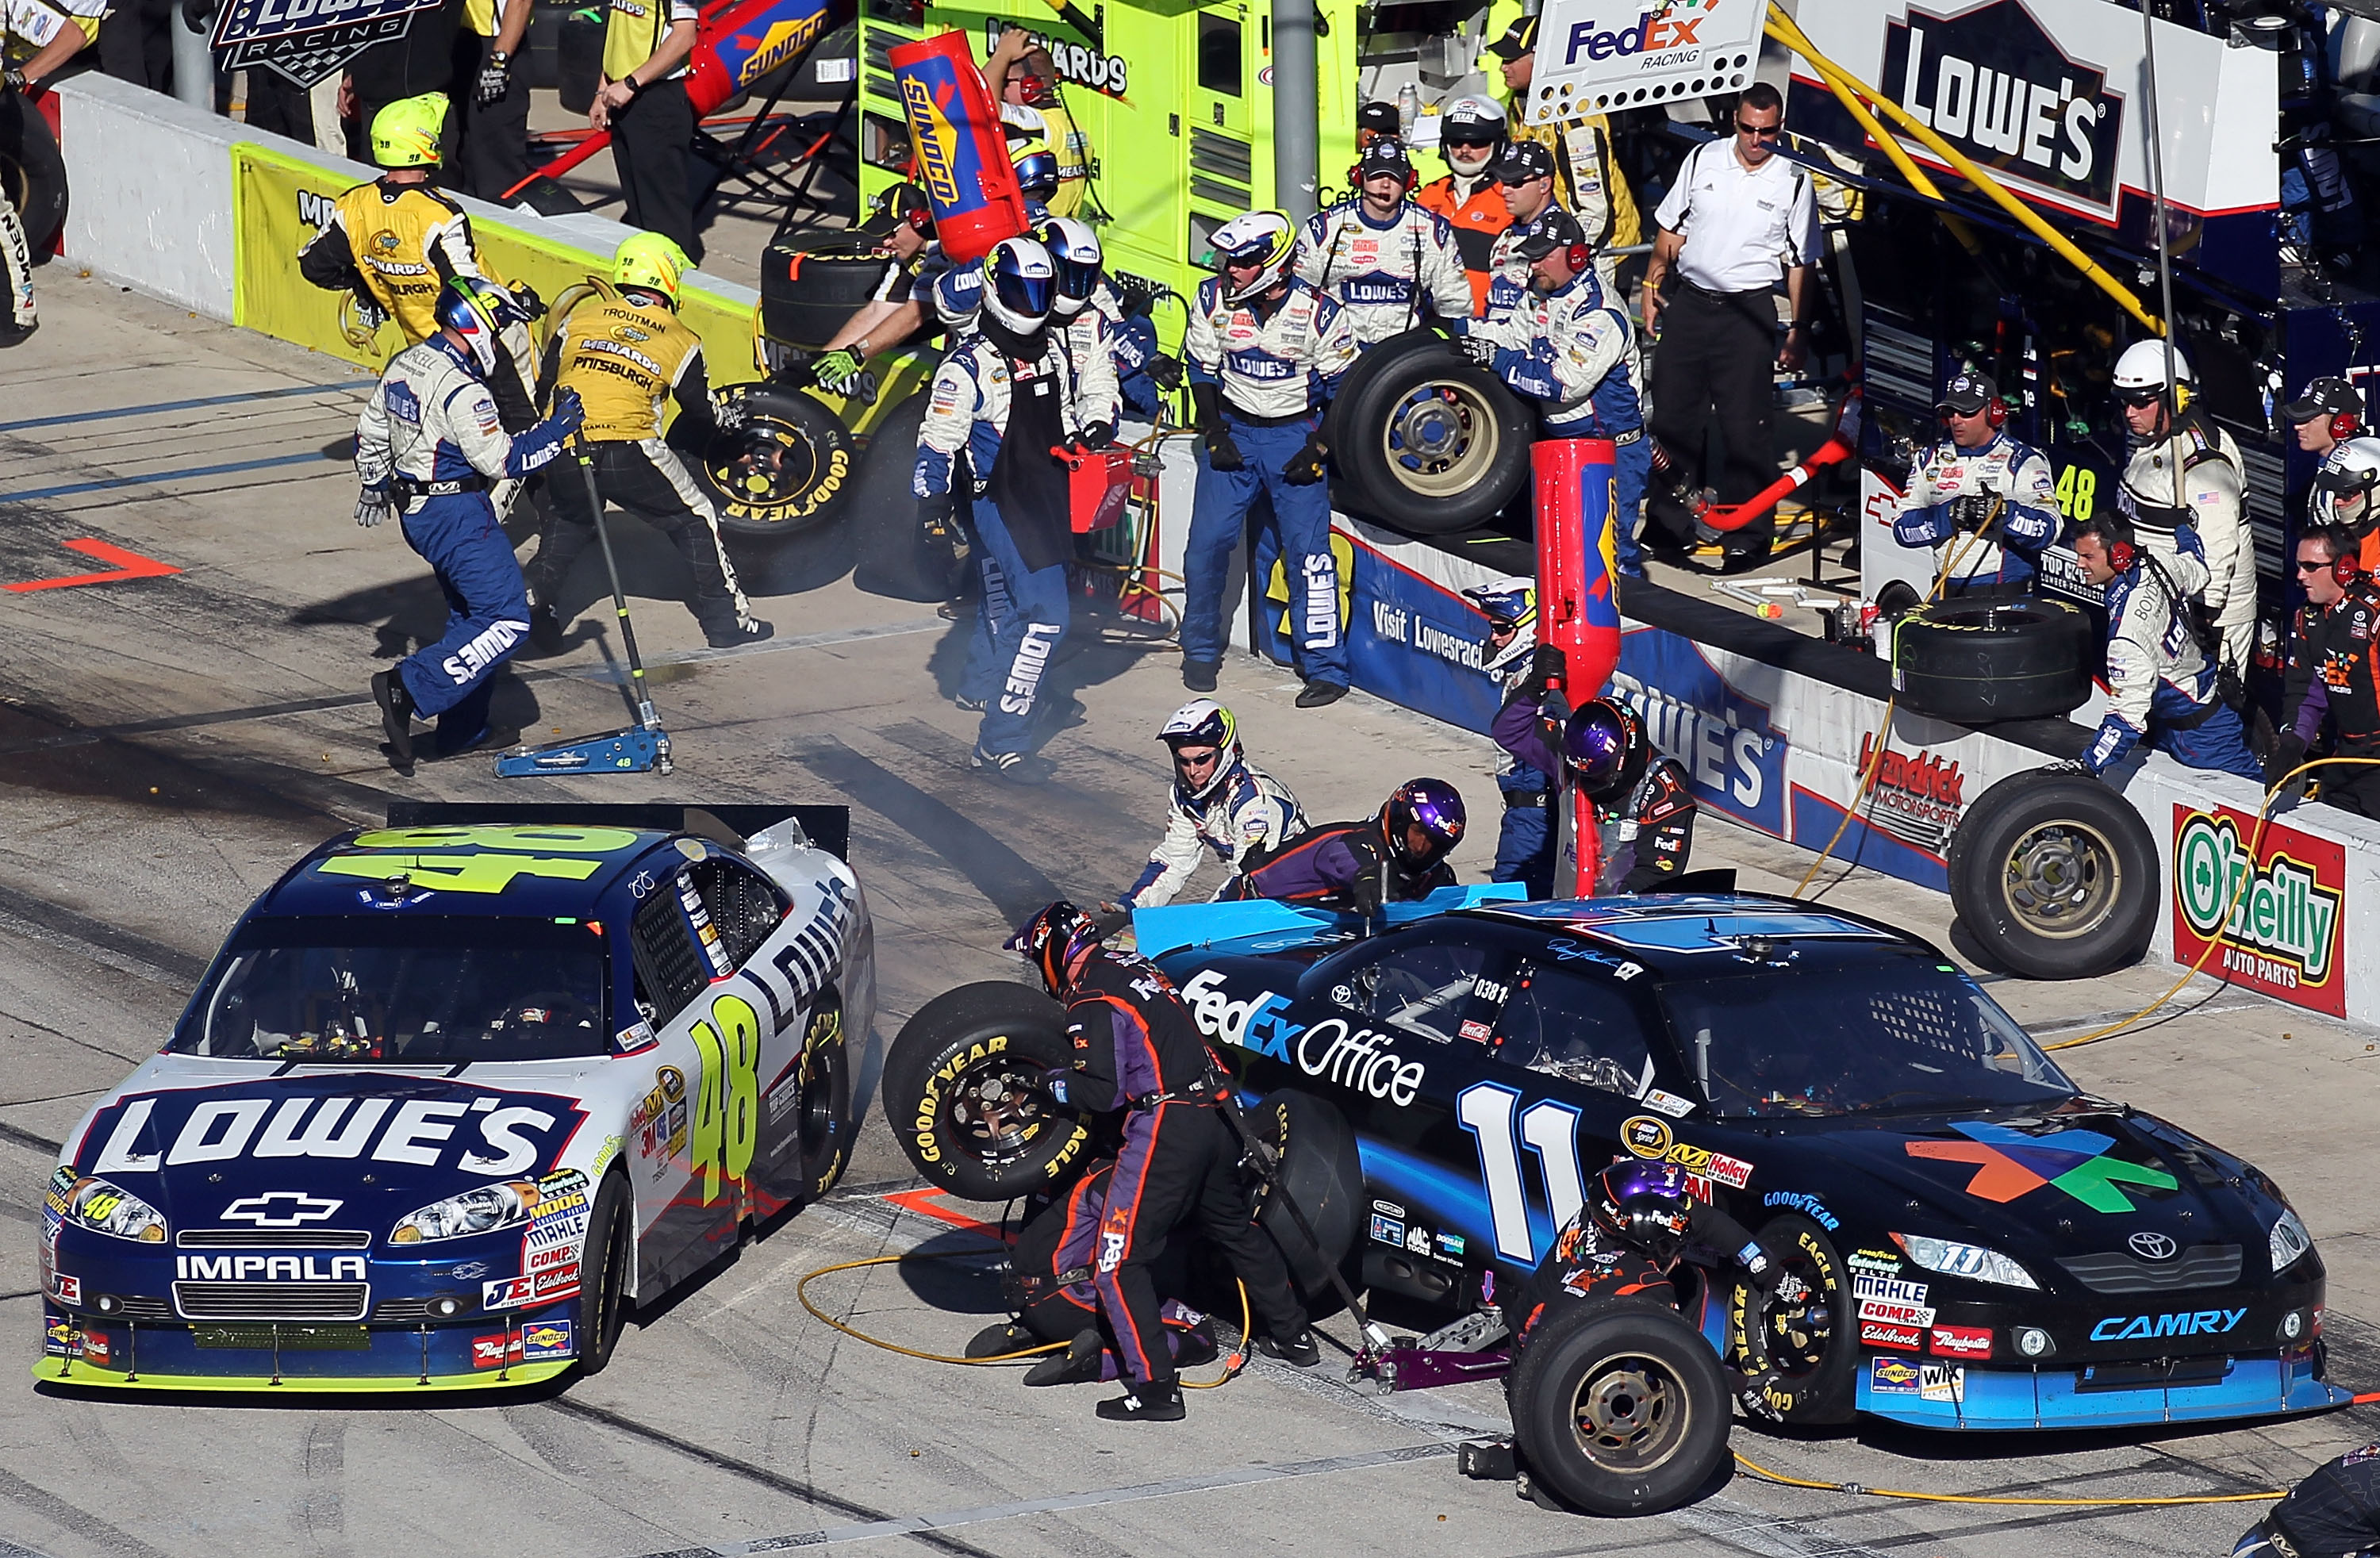 Jimmie Johnson and Denny Hamlin's NASCAR TItle battle ramped up when Mike Ford chose the pit stall directly in front of the No. 48.